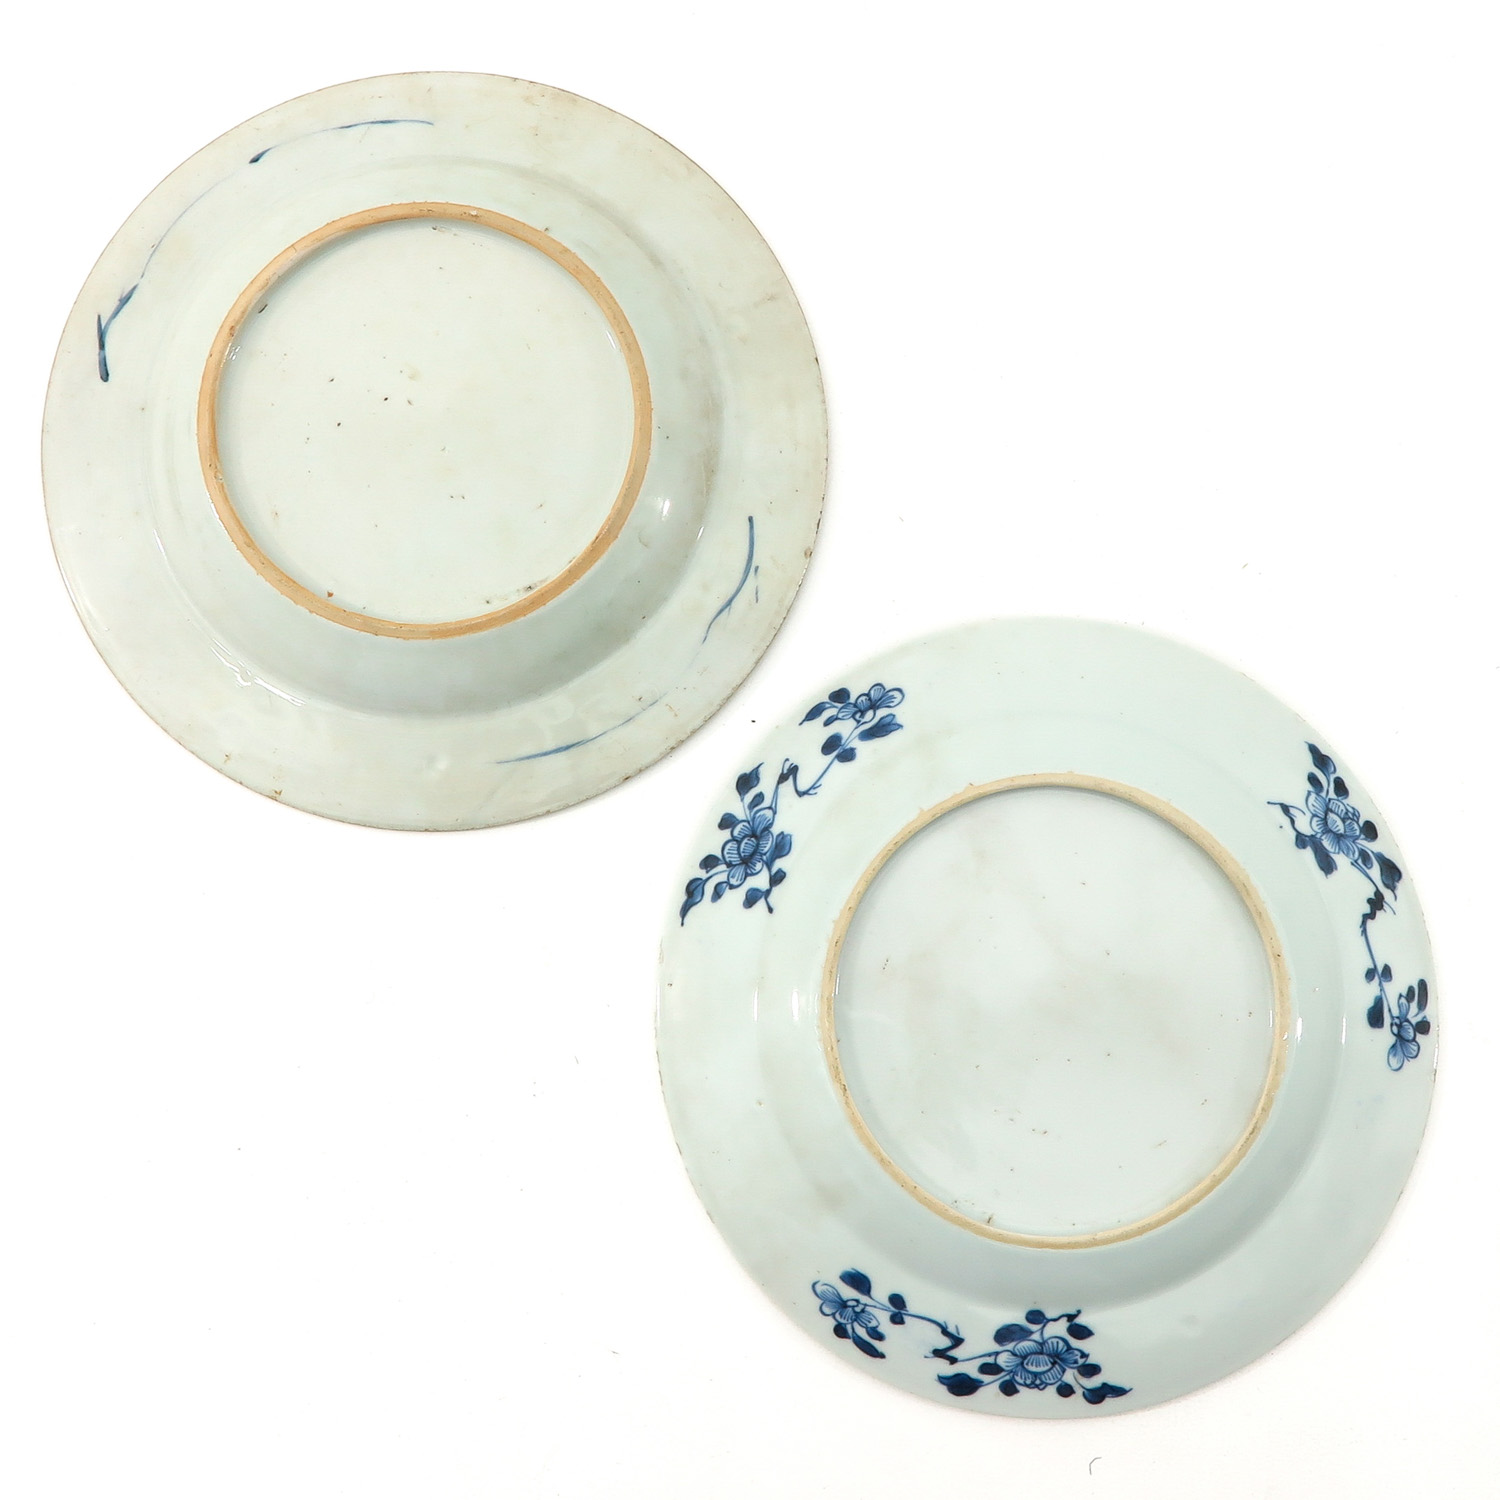 A Collection of 4 Blue and White Plates - Image 4 of 10